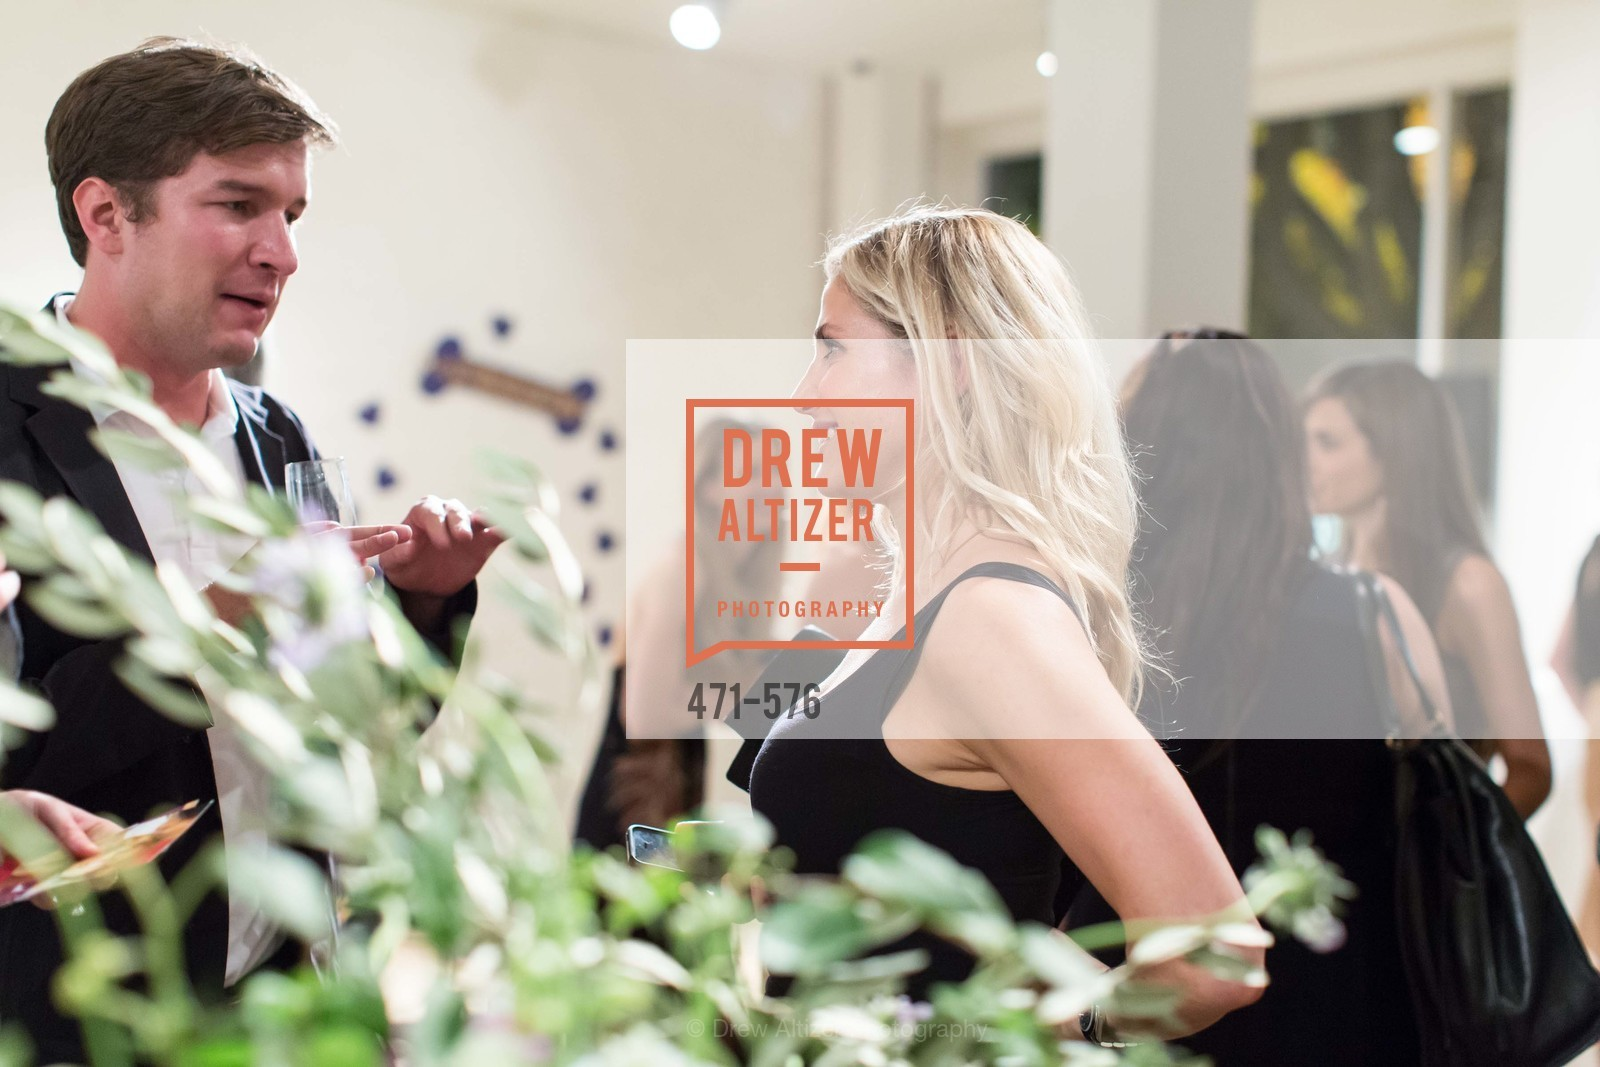 Skye Kennedy, Kimberly Ovitz, SF FALL ANTIQUES SHOW Designer's Circle Cocktail Party at HEWN, US, September 23rd, 2014,Drew Altizer, Drew Altizer Photography, full-service agency, private events, San Francisco photographer, photographer california